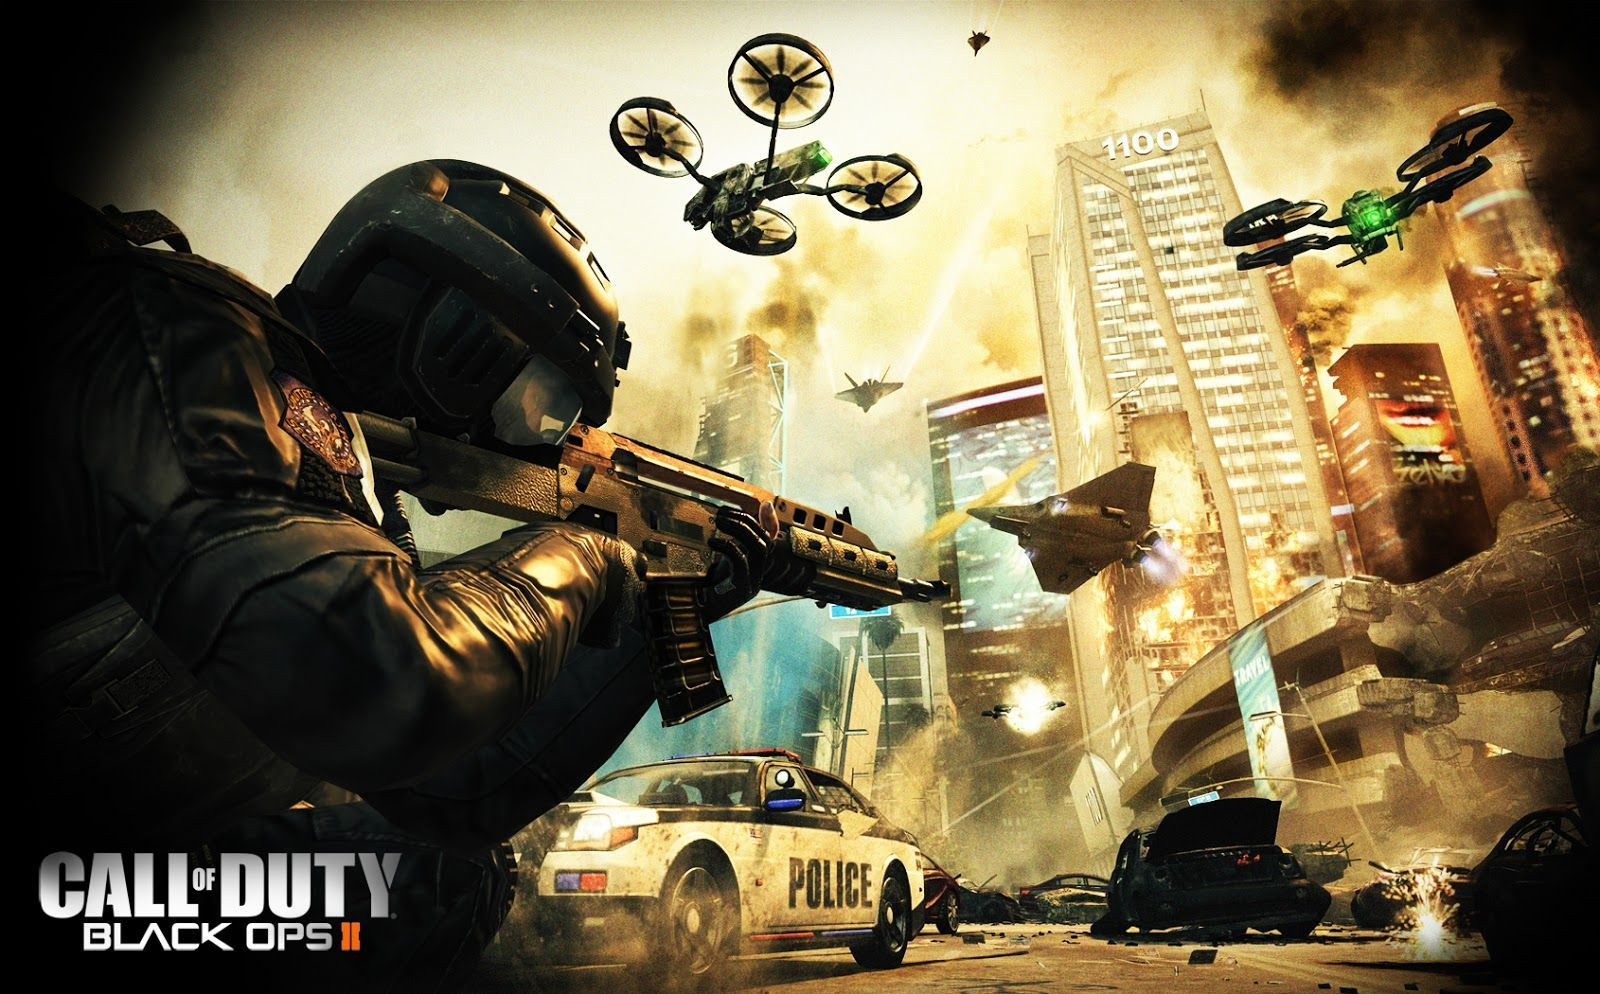 callofdutyblackops-Call-of-Duty-Black-Ops-wallpaper-wp3403686